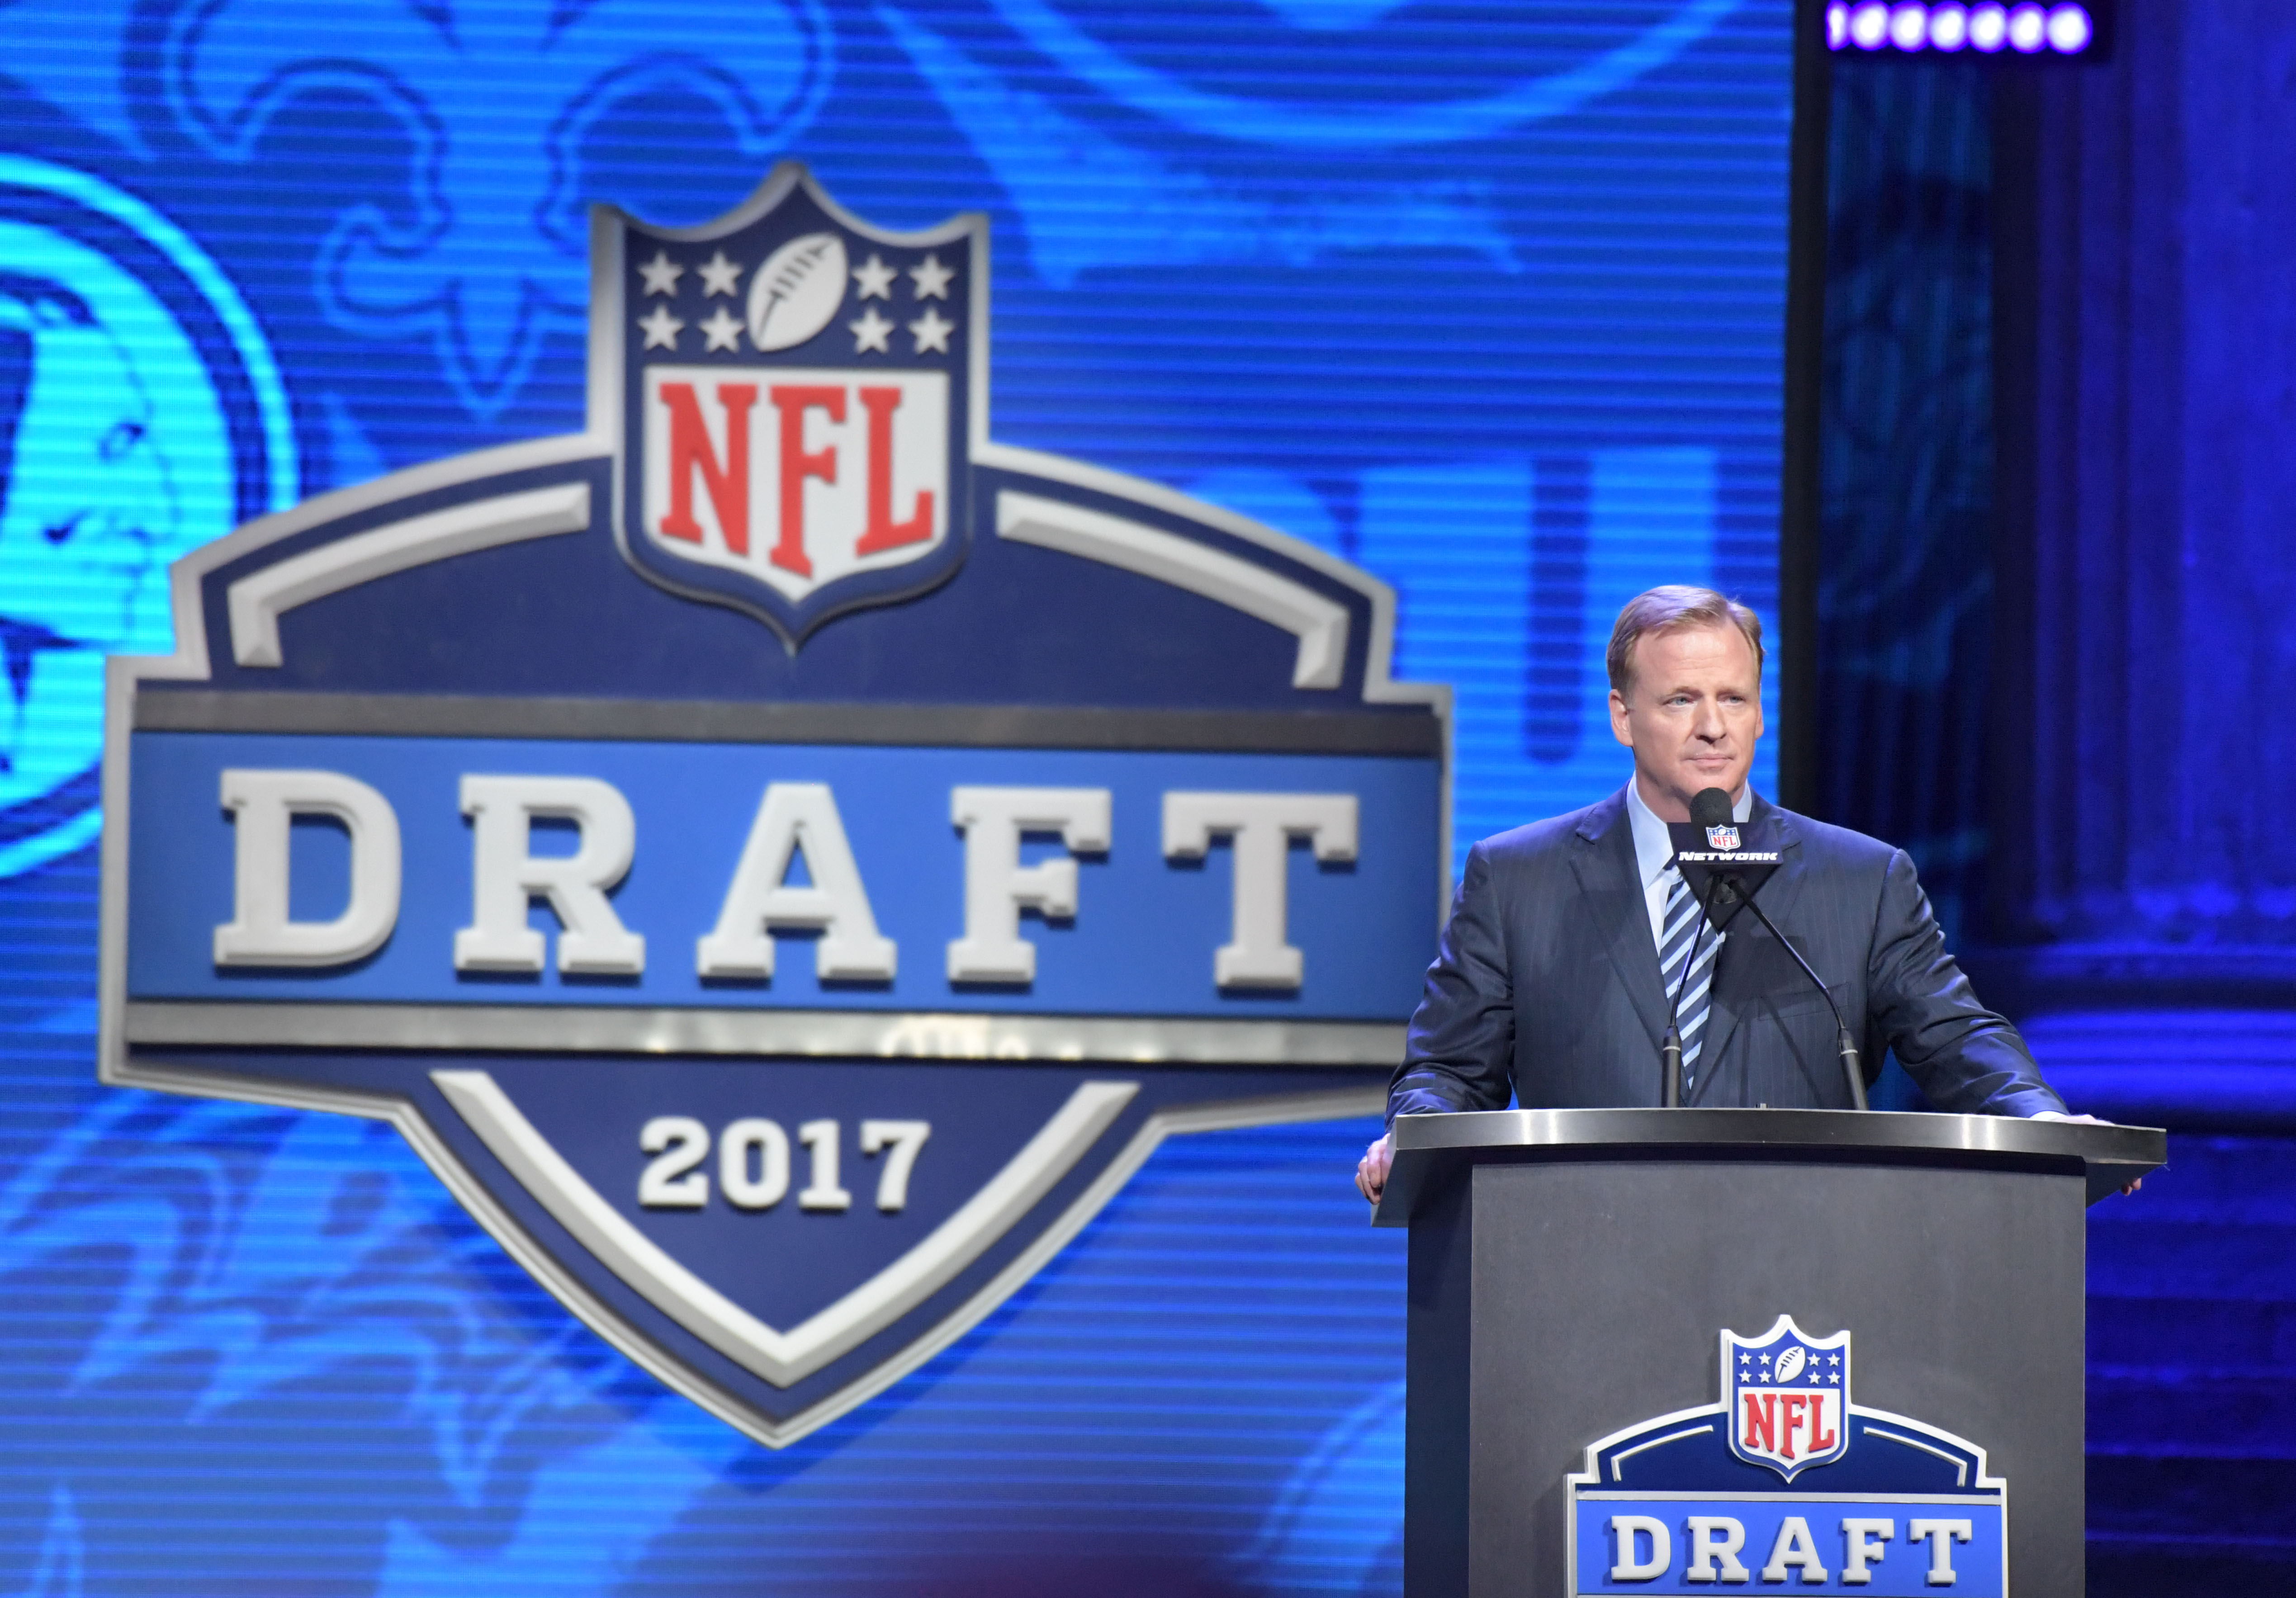 Apr 27, 2017; Philadelphia, PA, USA; NFL commissioner Roger Goodell announces the start of the 2017 NFL Draft at the Philadelphia Museum of Art. Mandatory Credit: Kirby Lee-USA TODAY Sports